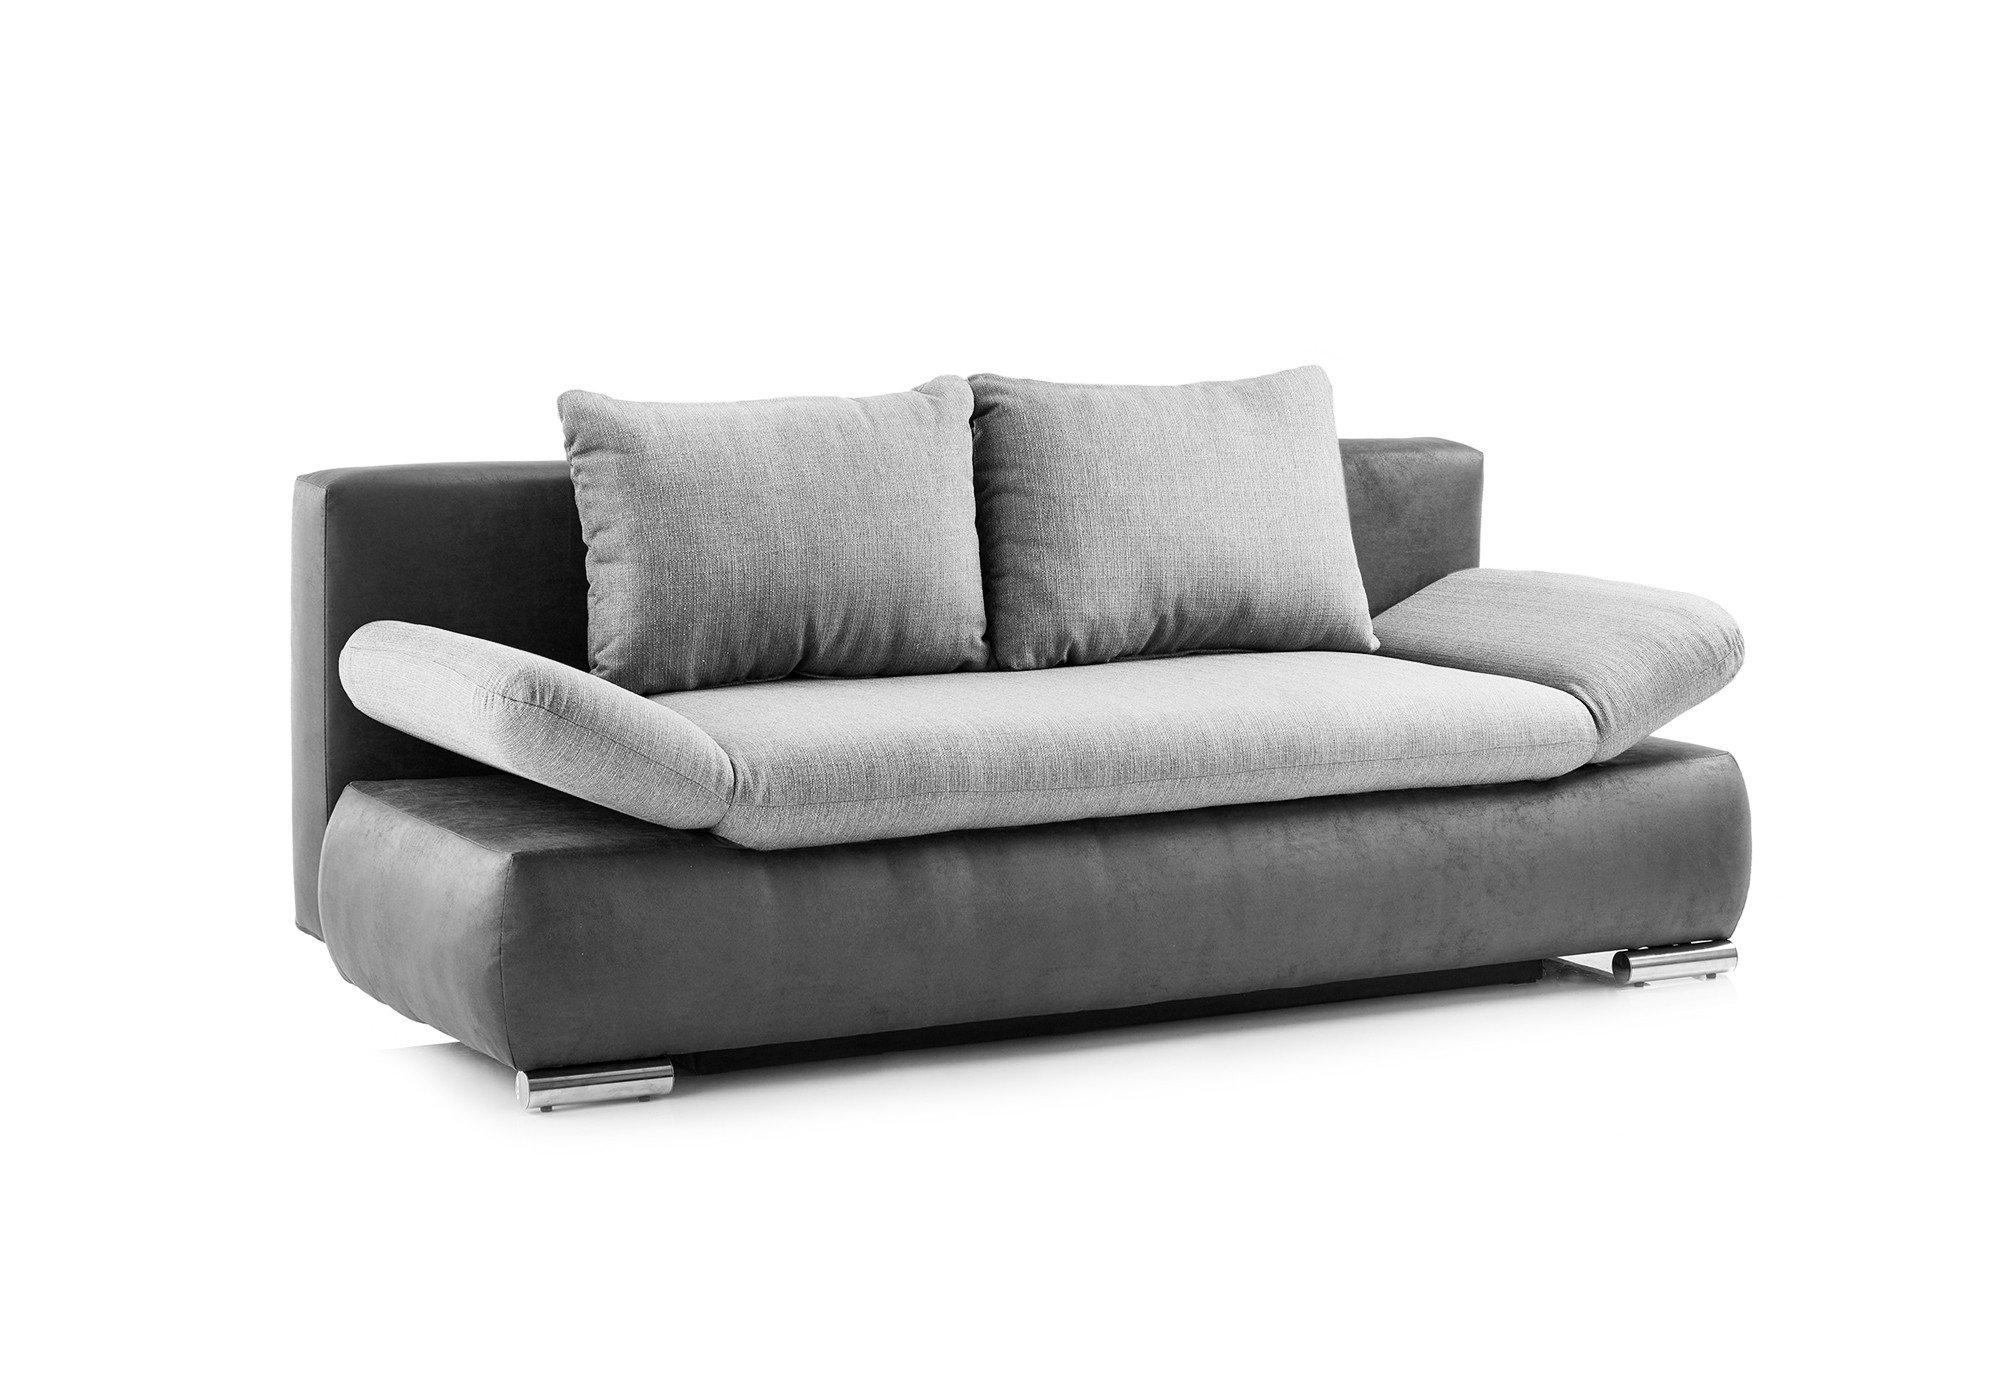 Mini Sofa Bed Fancy As Leather Sofa On Curved Sofa For Mini Sofa Sleepers (View 6 of 20)